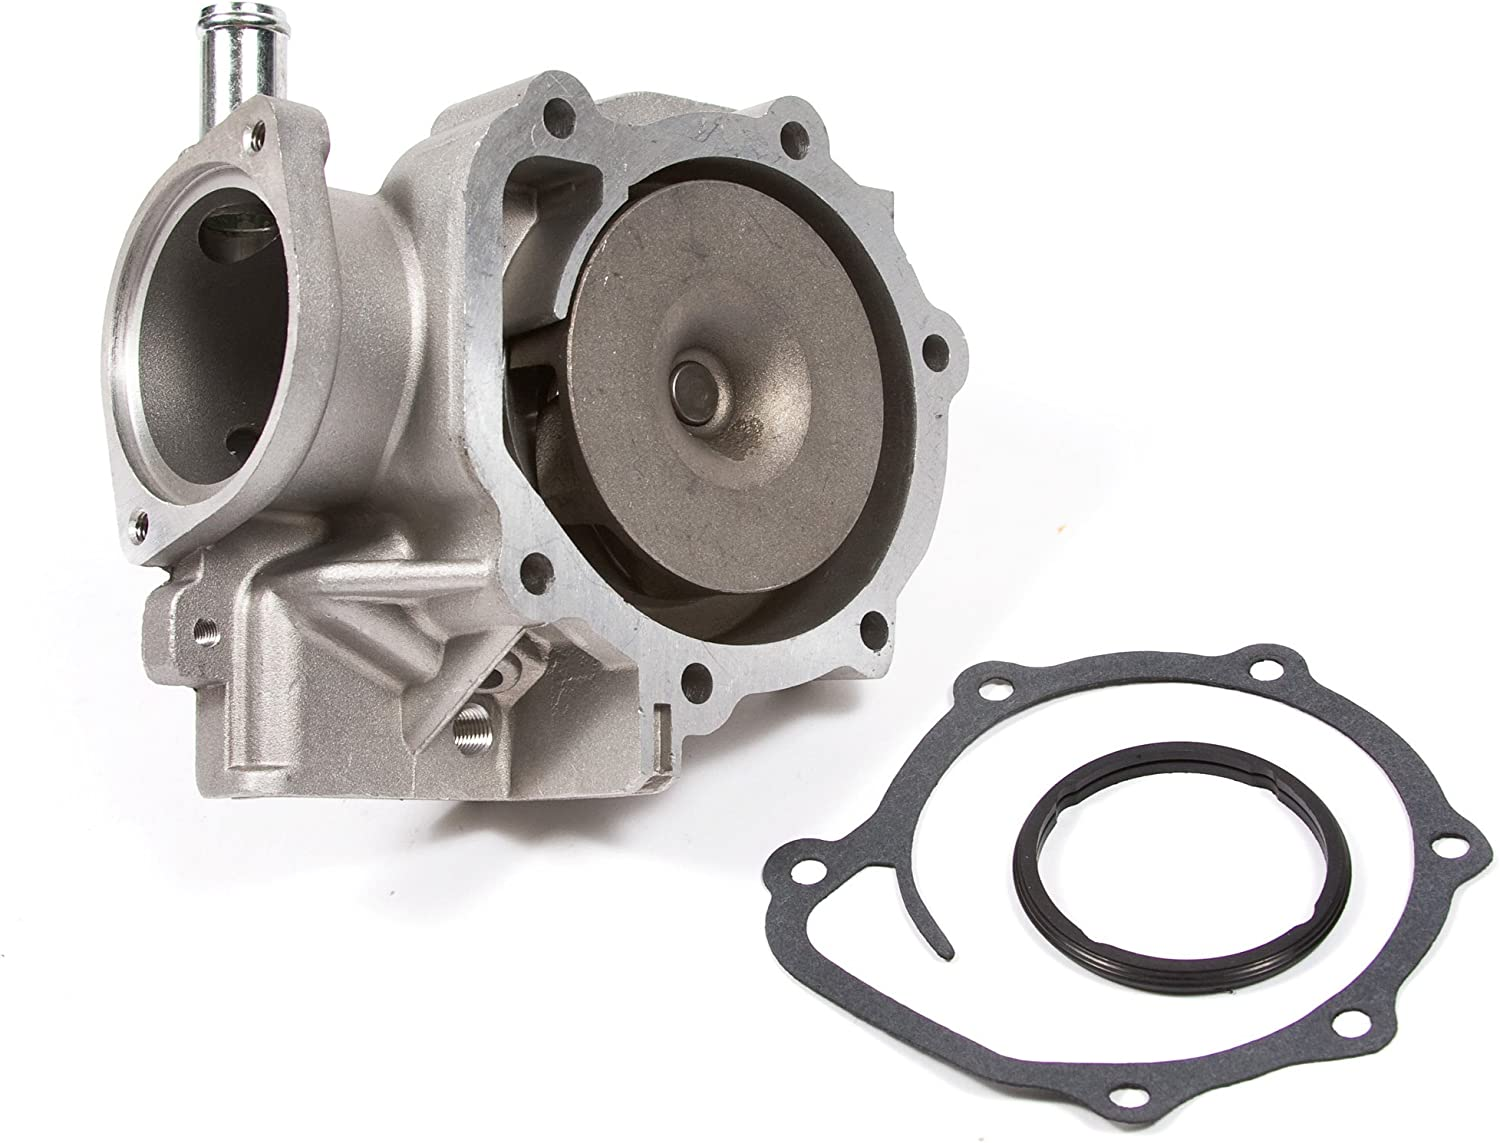 Evergreen TBK304WP3 Fits 03-05 Subaru Forester 2.5 SOHC Automatic Transmission Timing Belt Kit GMB Water Pump